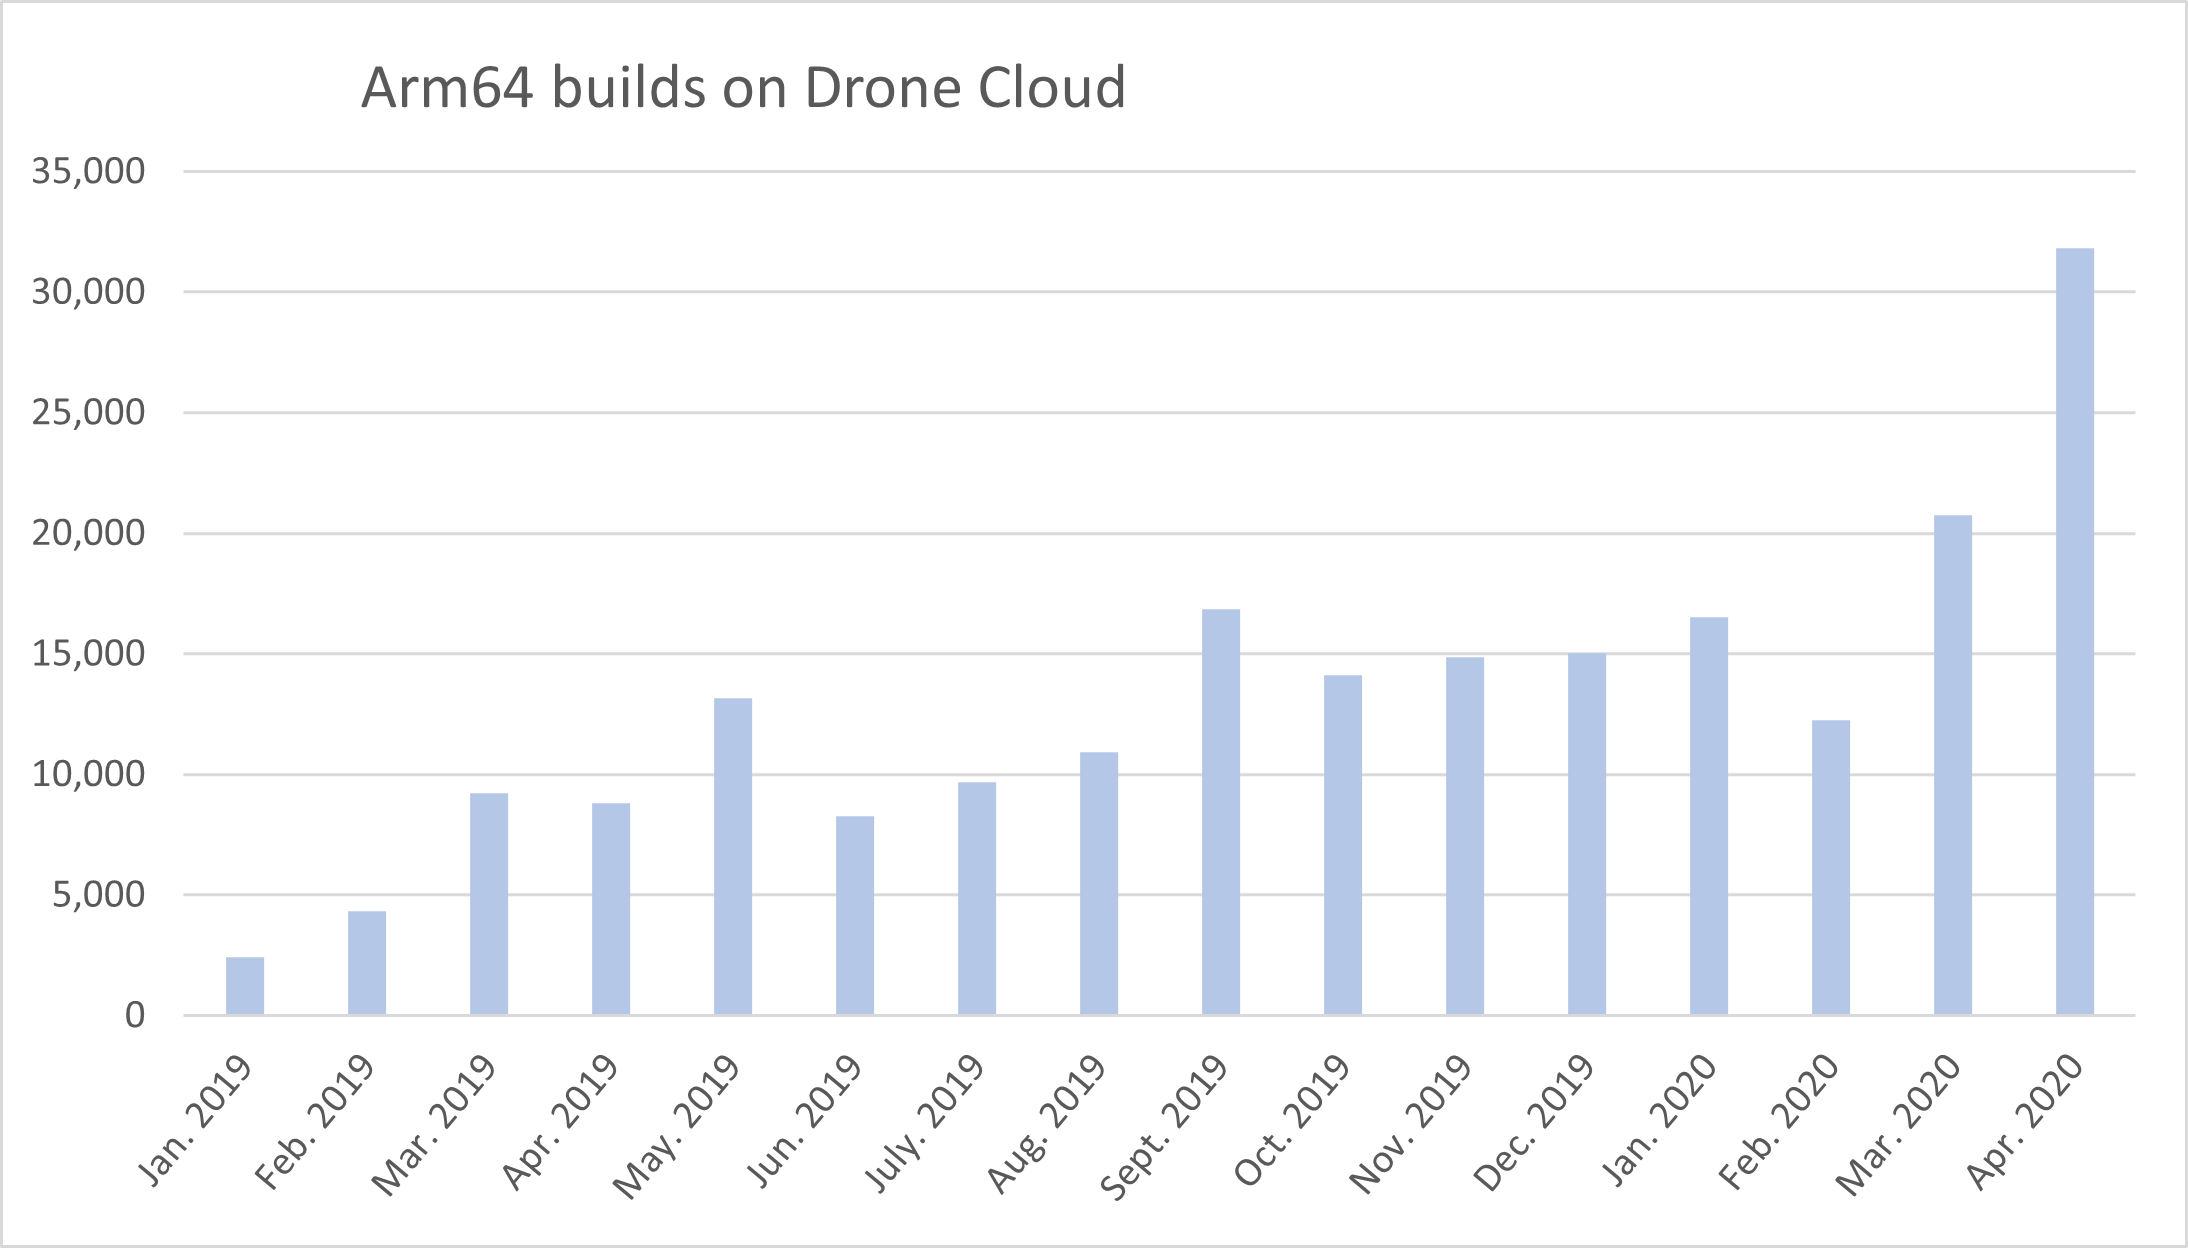 Graph: Arm64 builds on Drone Cloud